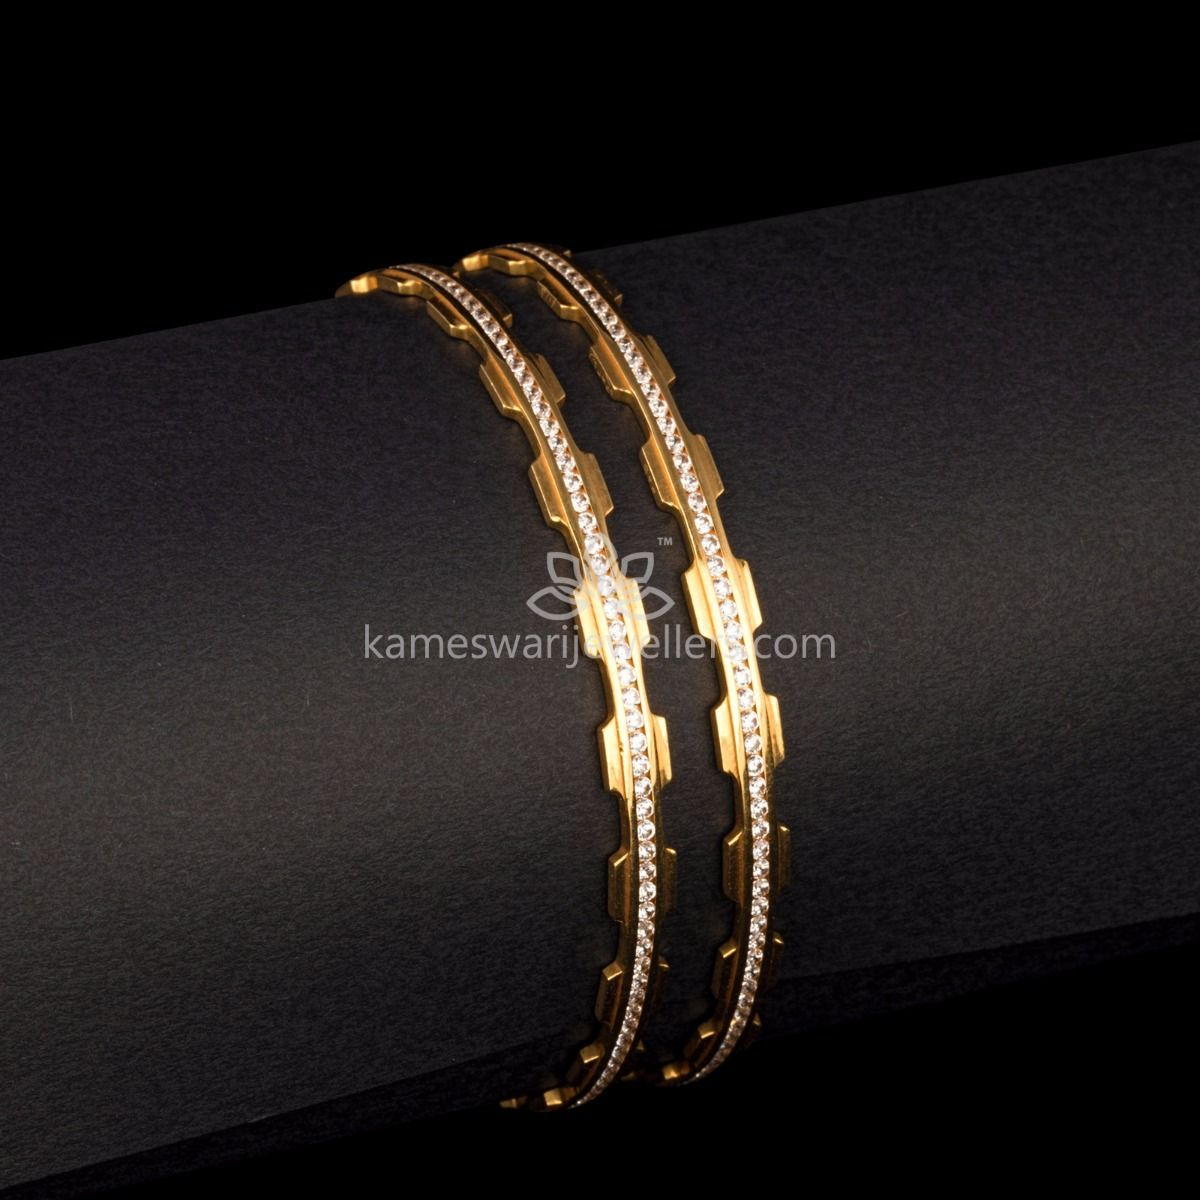 Cz eloquence in jewellery pinterest bangles jewelry and